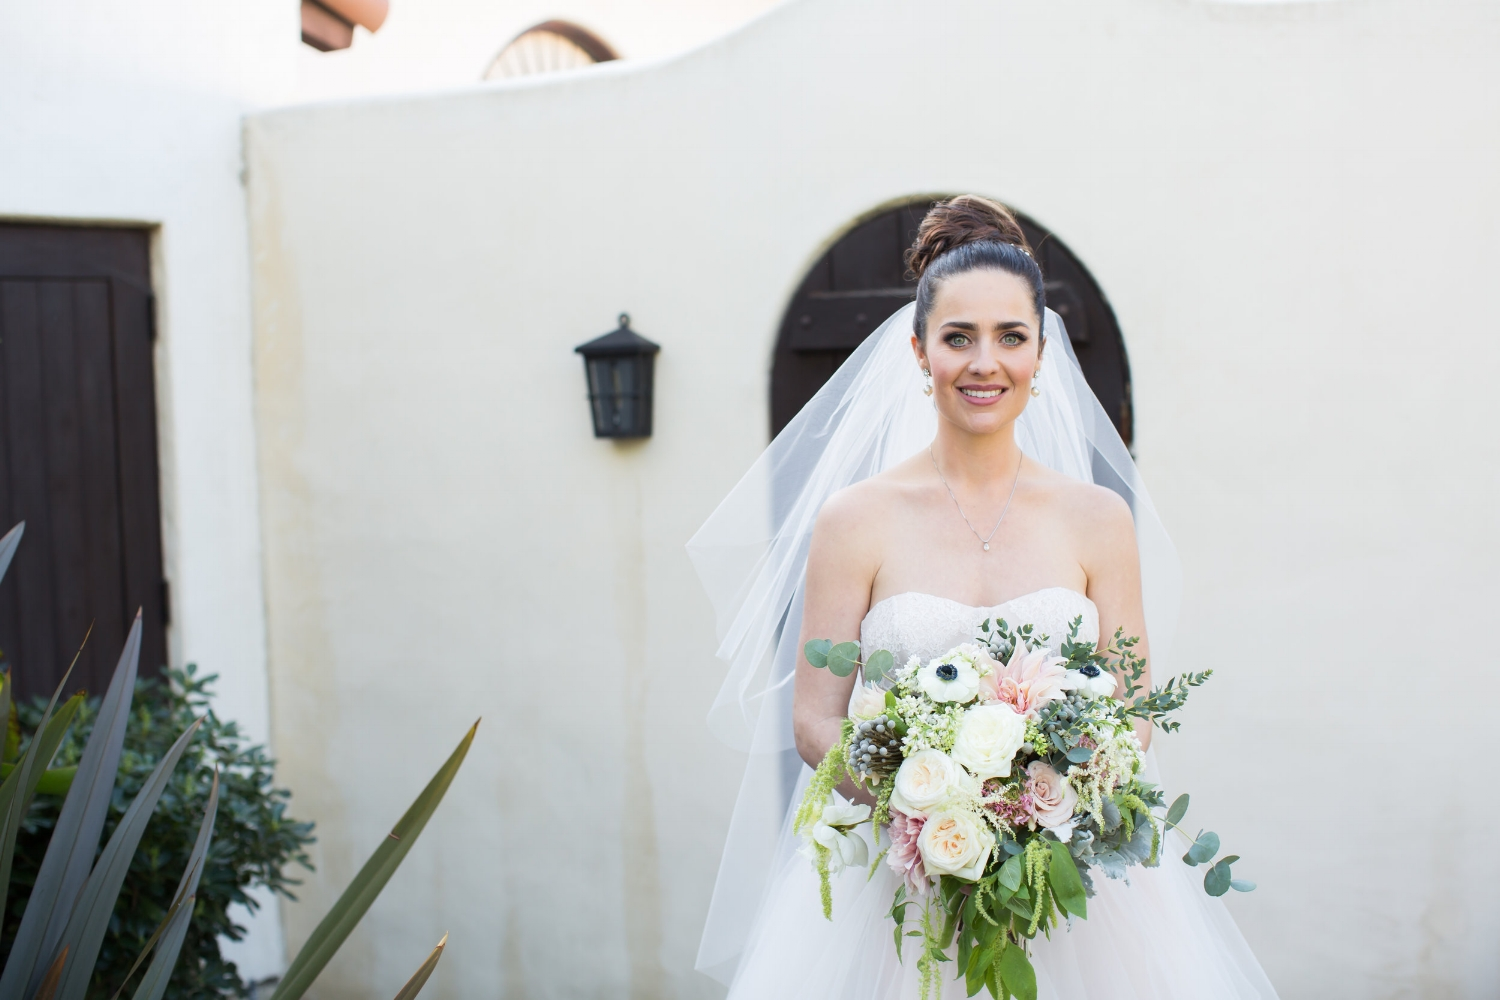 Brunette Bride with Braid Updo and Bouquet. Wedding Hair and Makeupby Vanity Belle in Orange County (Costa Mesa) and San Diego (La Jolla)